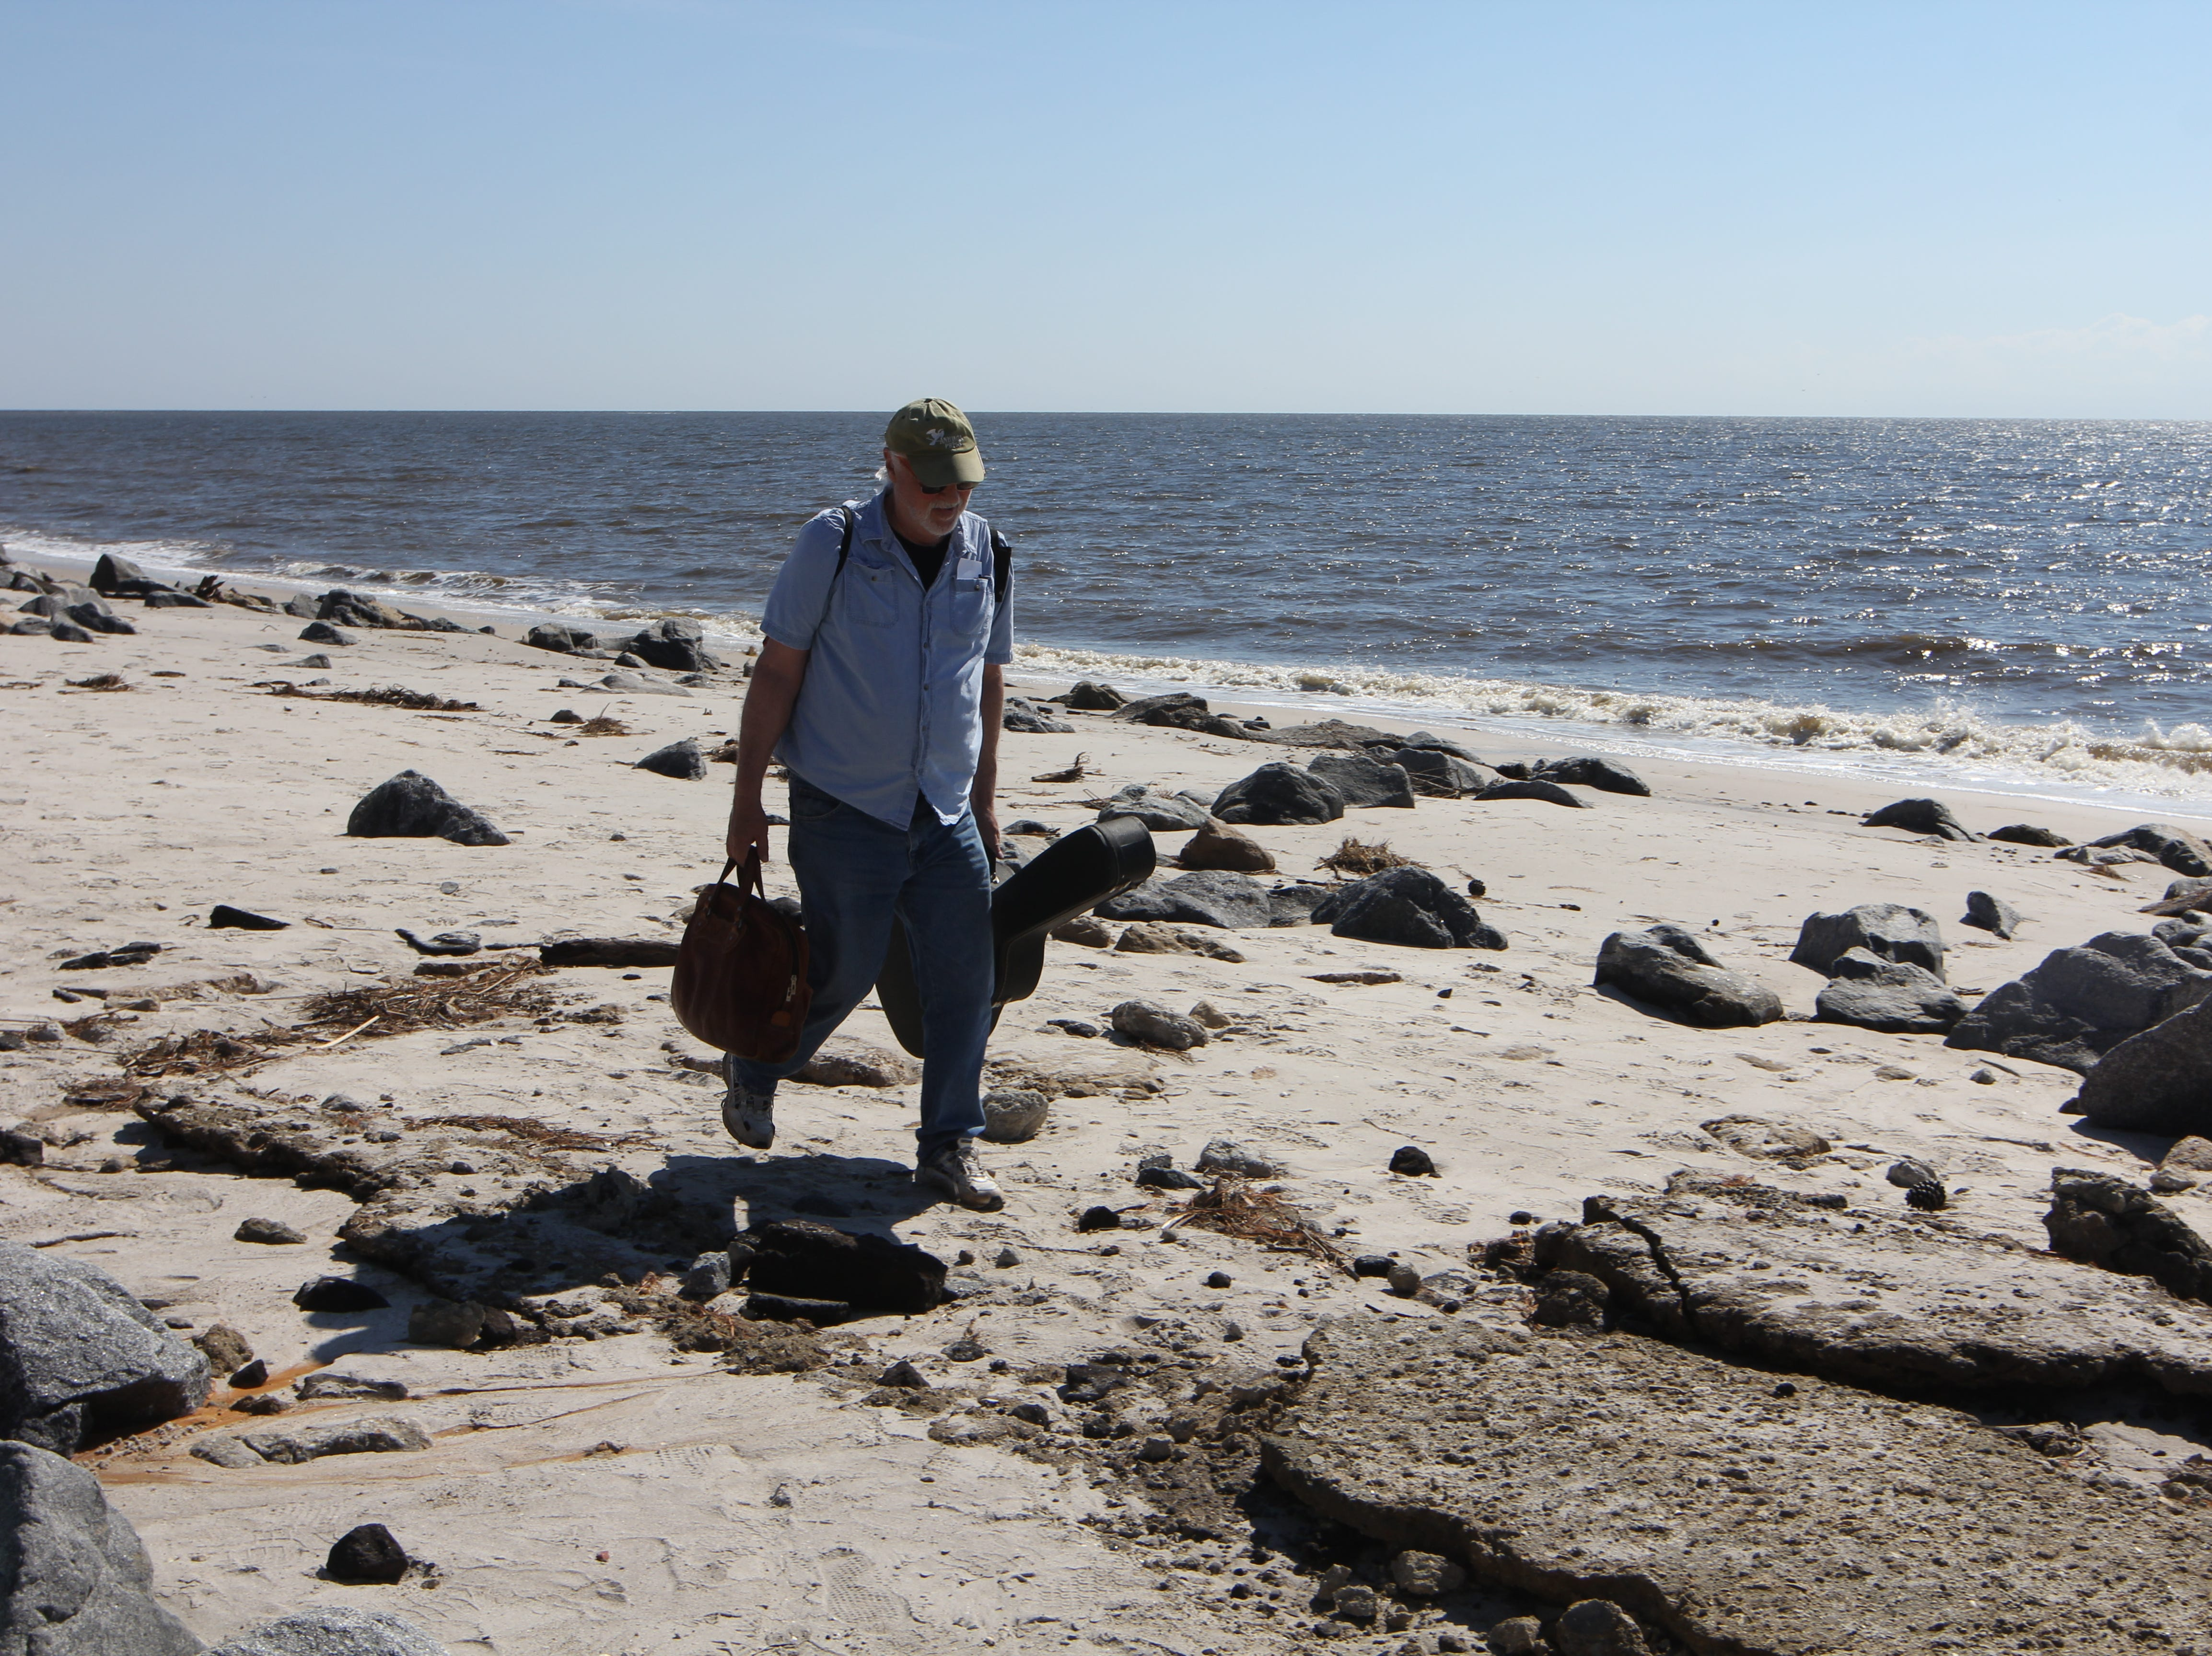 Dean Newman, an Alligator Point resident, hikes in a guitar after the main road was washed out by Hurricane Michael. Newman took 10 guitars off the peninsula before the storm.